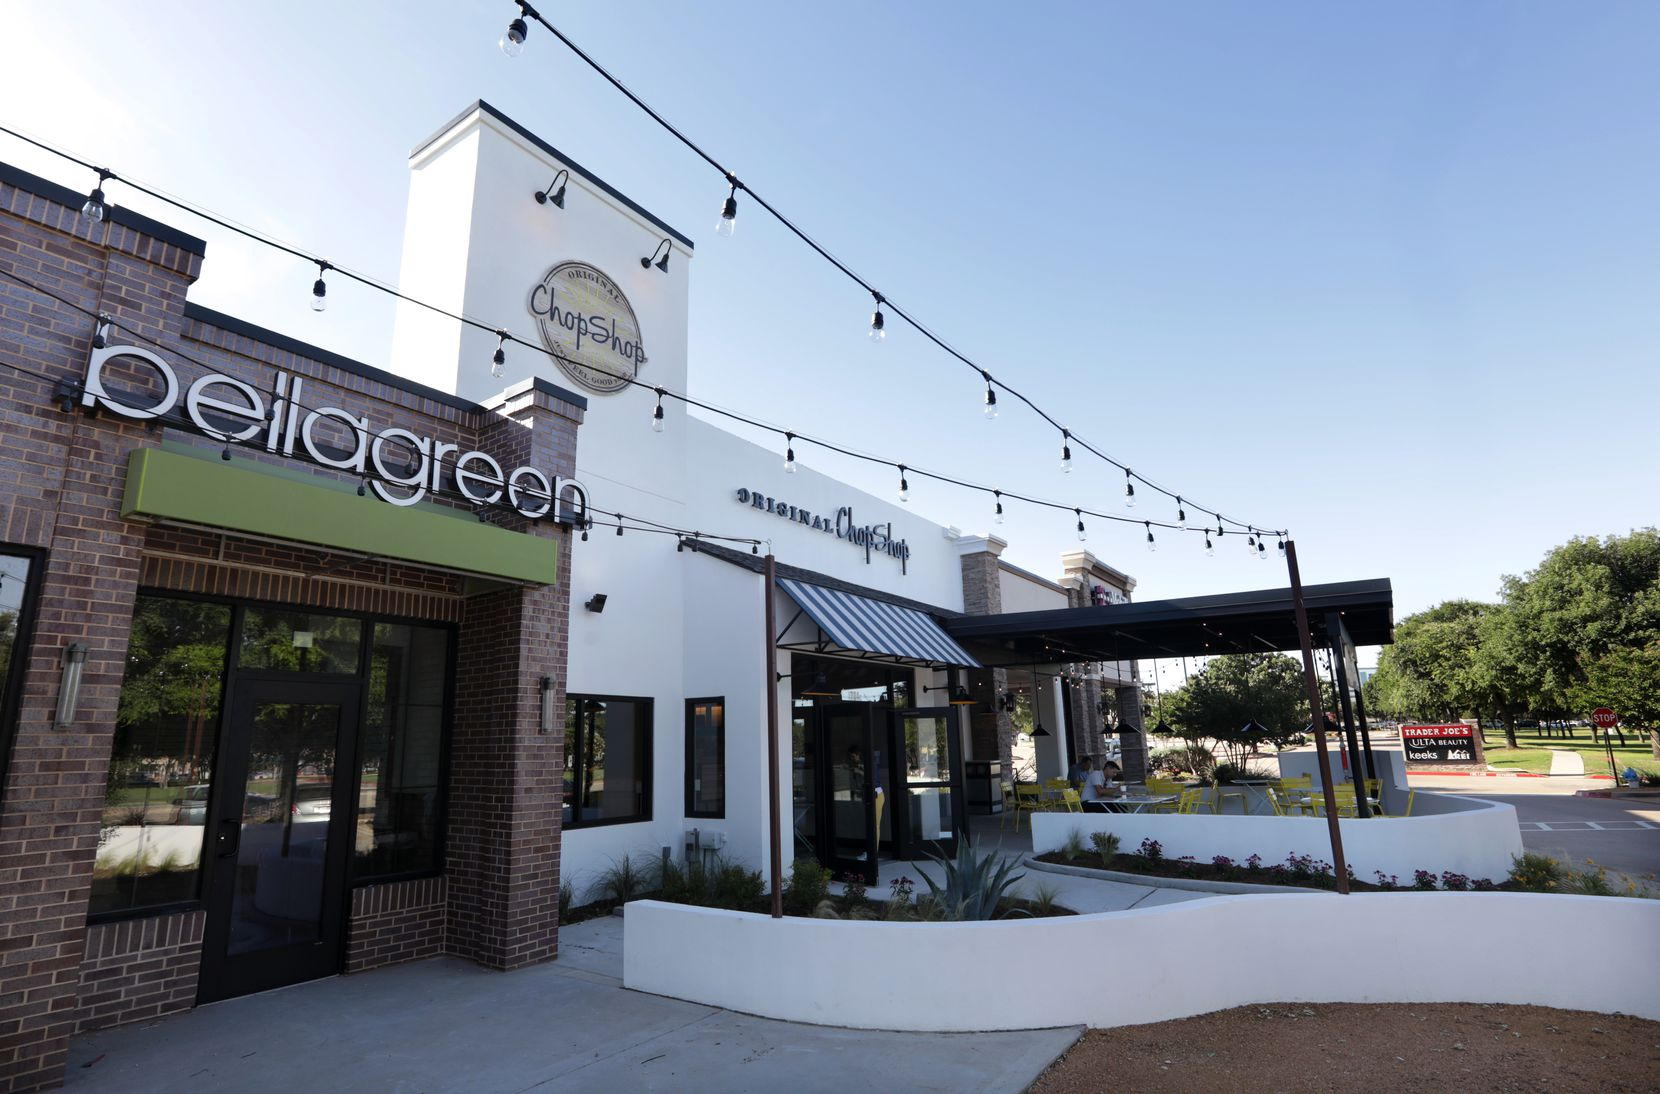 Jason Morgan, CEO of restaurant chains Bellagreen and Original ChopShop, which have each received $1.5 million in PPP funds, believes the loan program will actually leave his restaurants better off than they were before. (Jason Janik/Special Contributor)